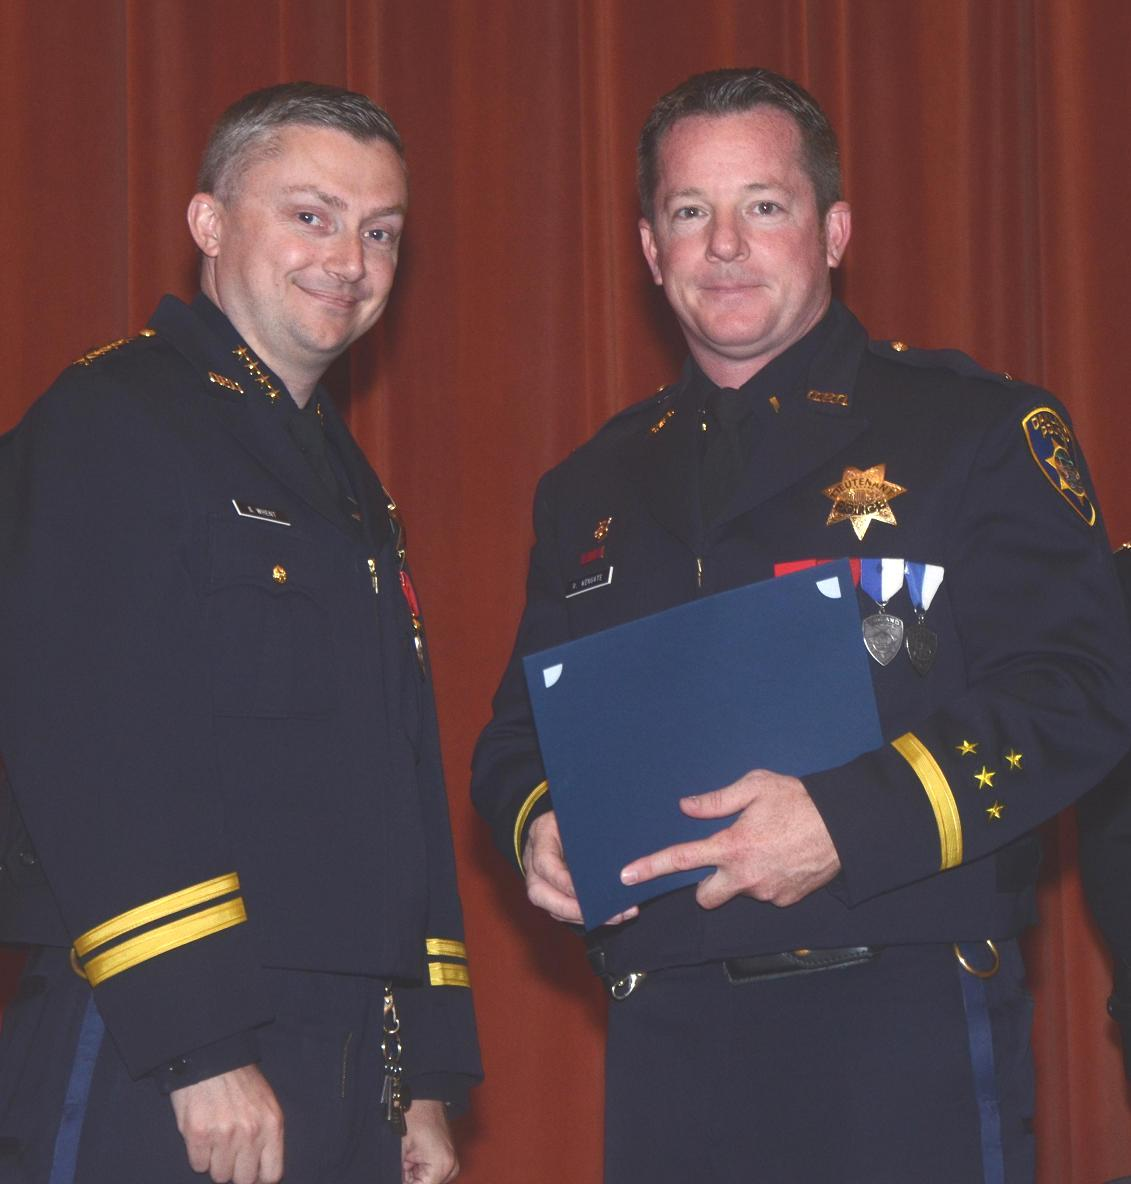 Lt Randy Wingate Community Service Award